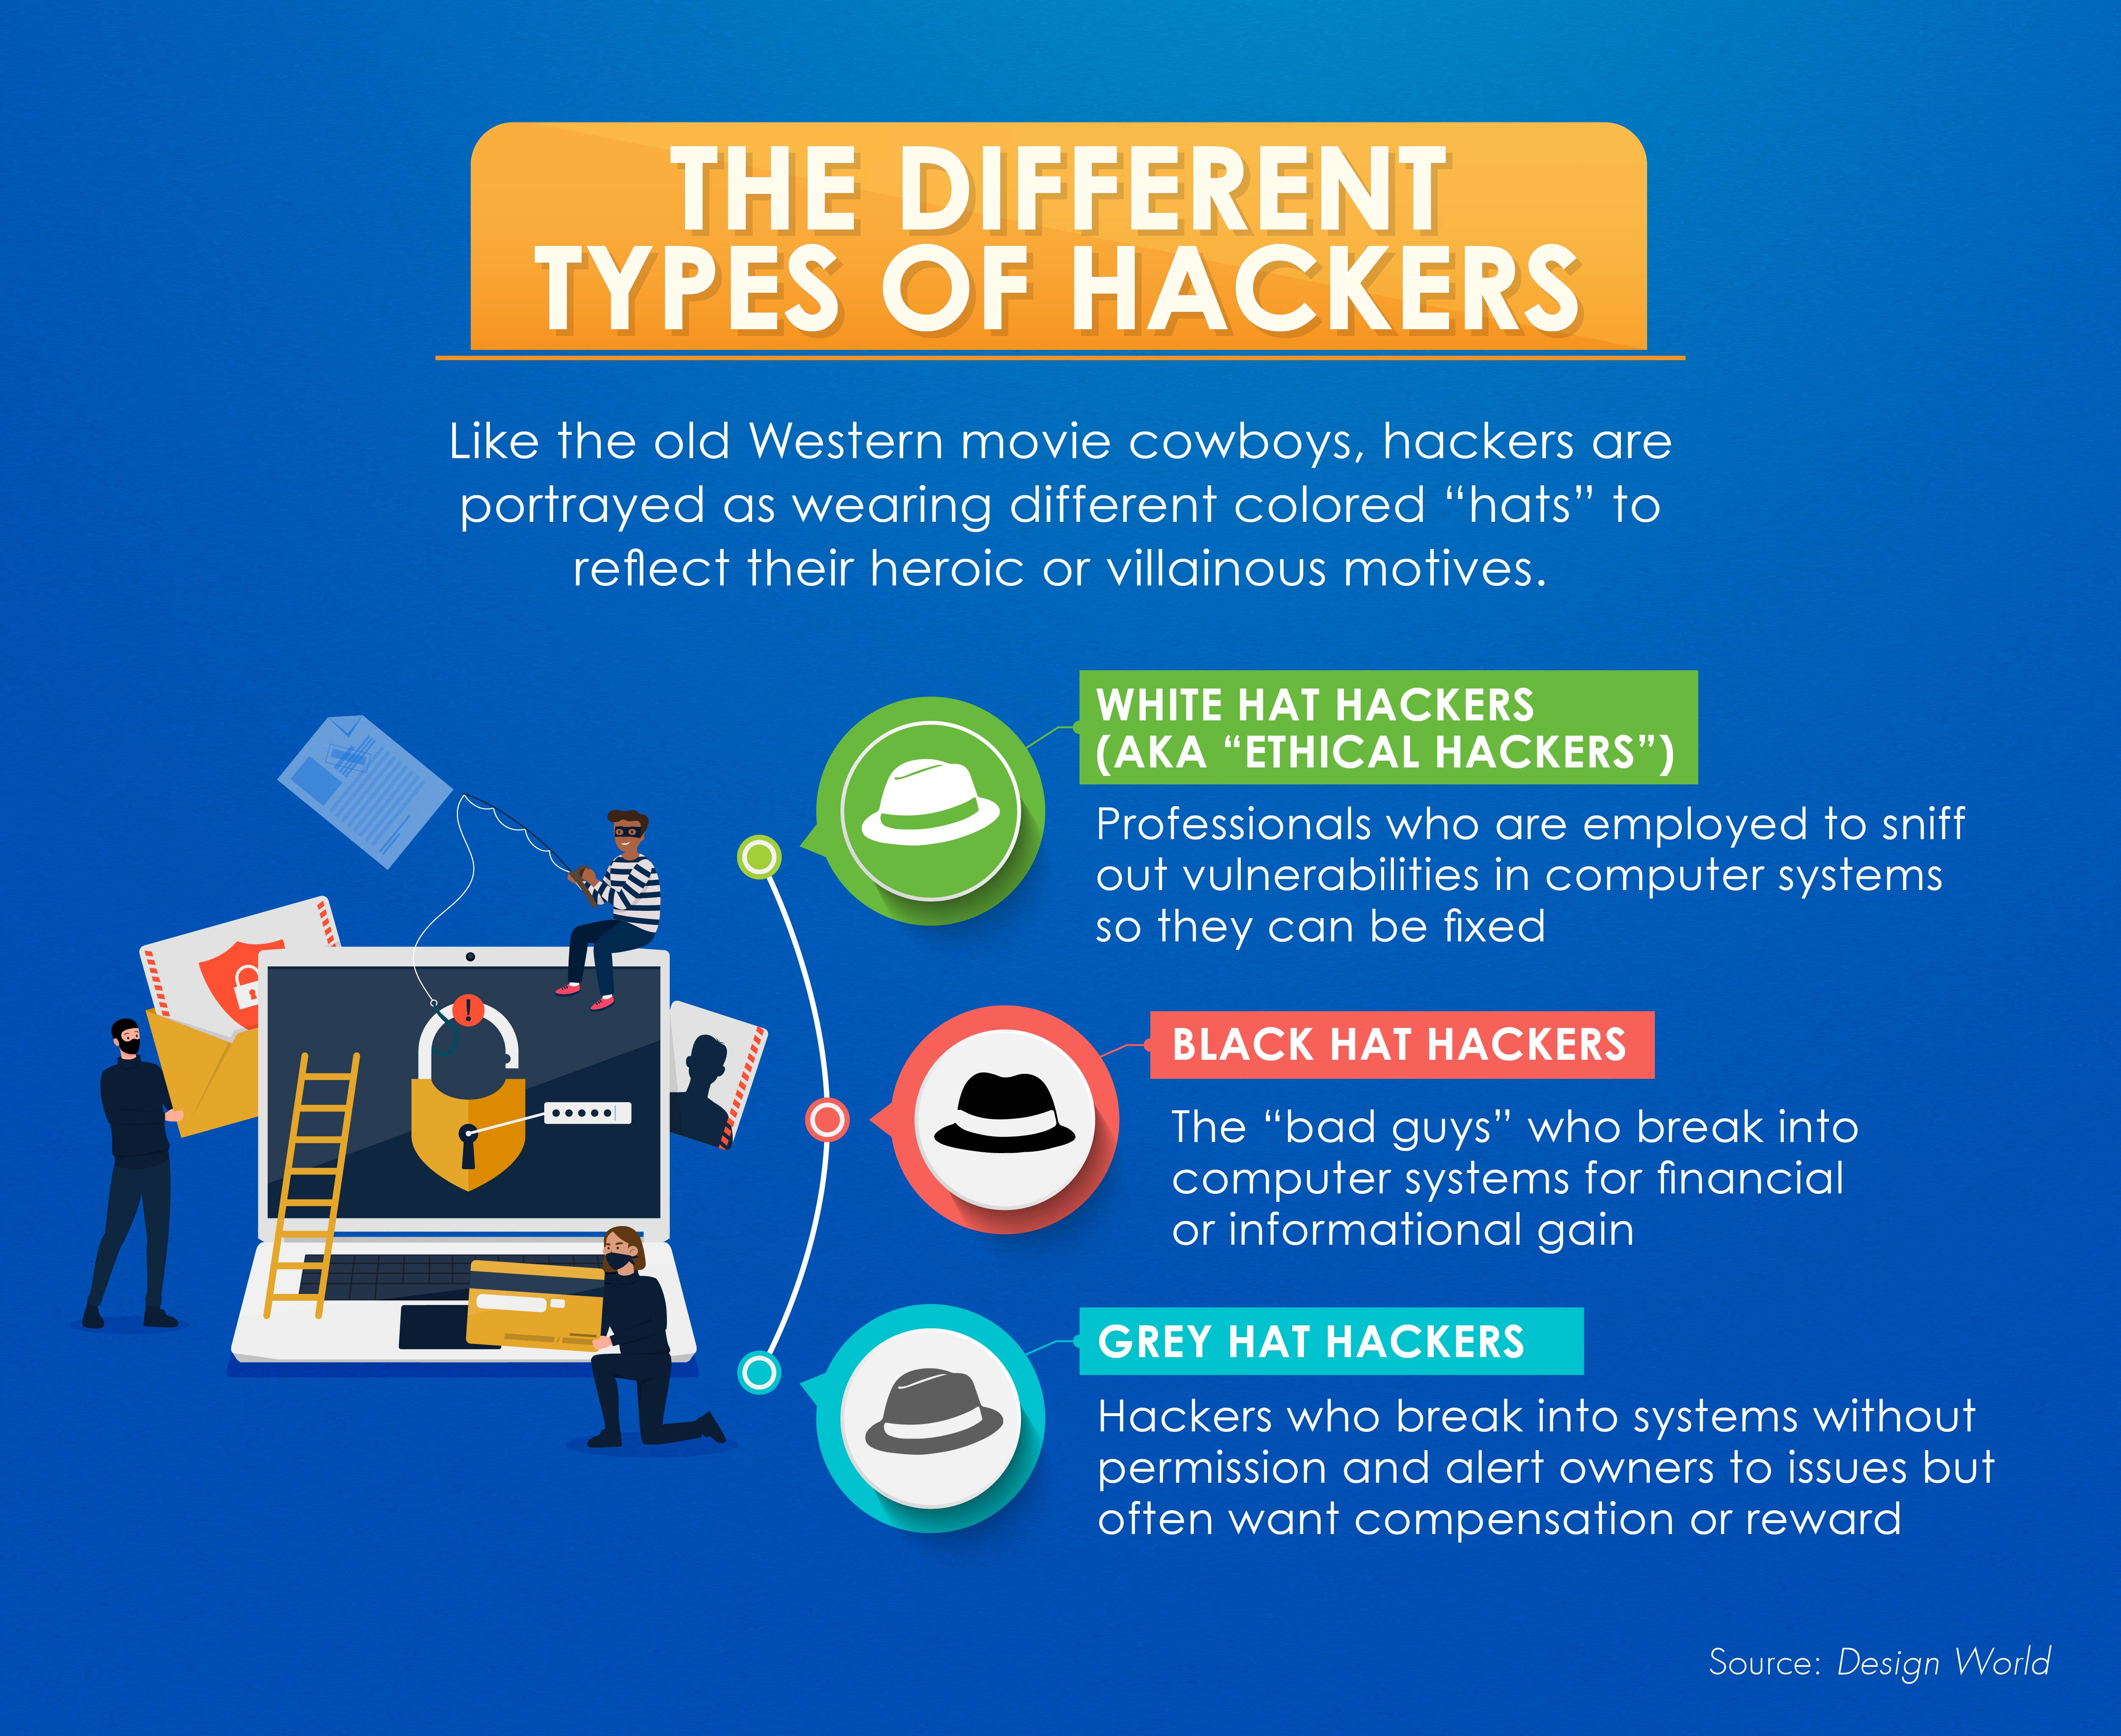 Definitions for white hat, black hat, and grey hat hackers.